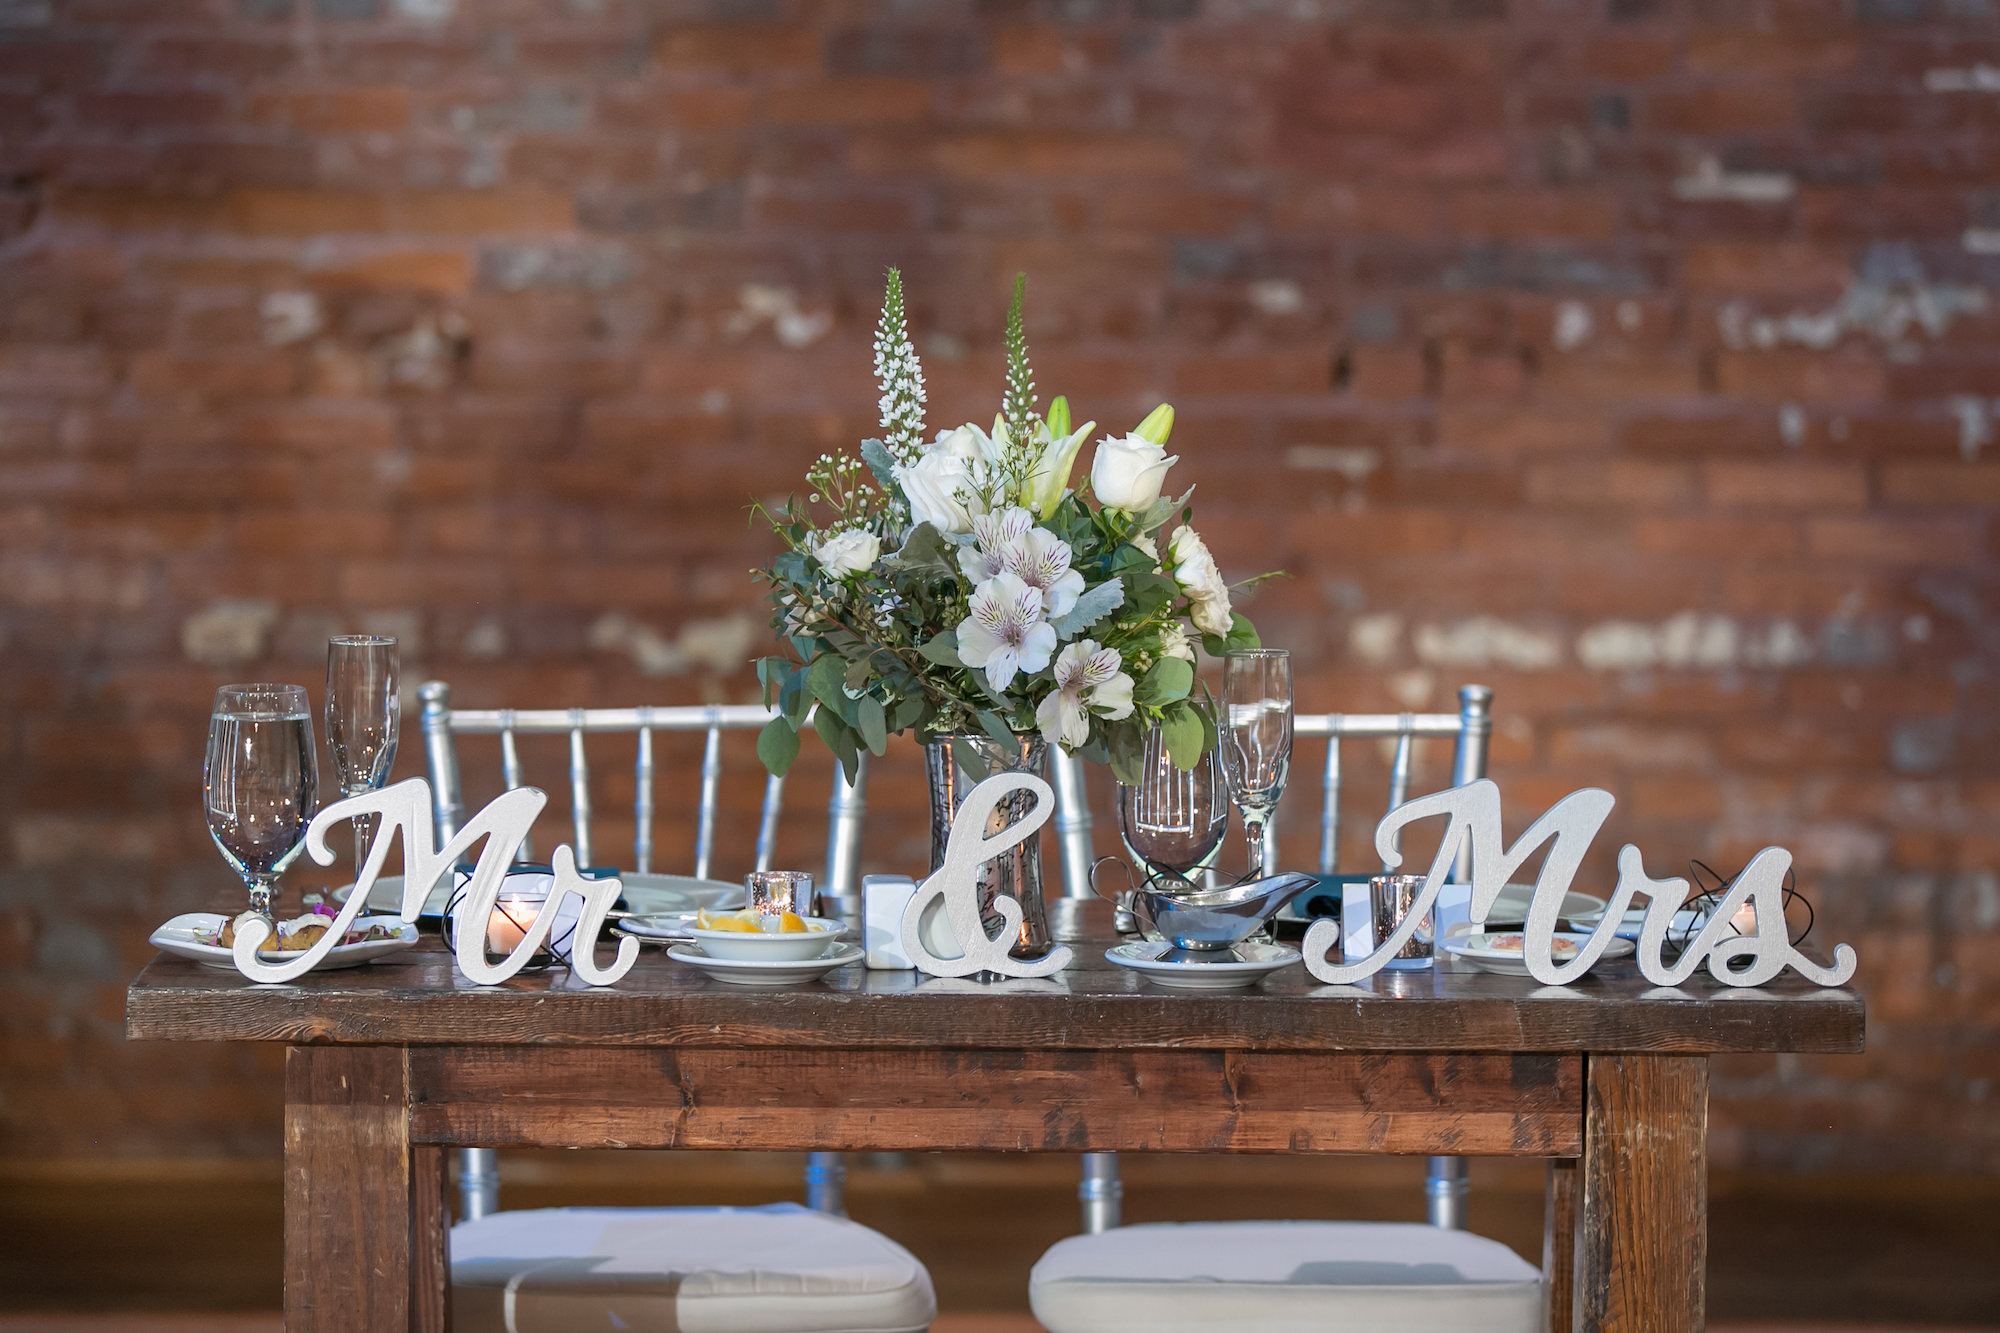 Rustic Wood Sweetheart Table with Silver Laser Cut Mr and Mrs Signage, Ivory Roses and Greenery Floral Bouquet, Silver Chiavari Chairs   Tampa Bay Wedding Photographer Carrie Wildes Photography   Chair and Table Rentals A Chair Affair   Wedding Planner Love Lee Lane